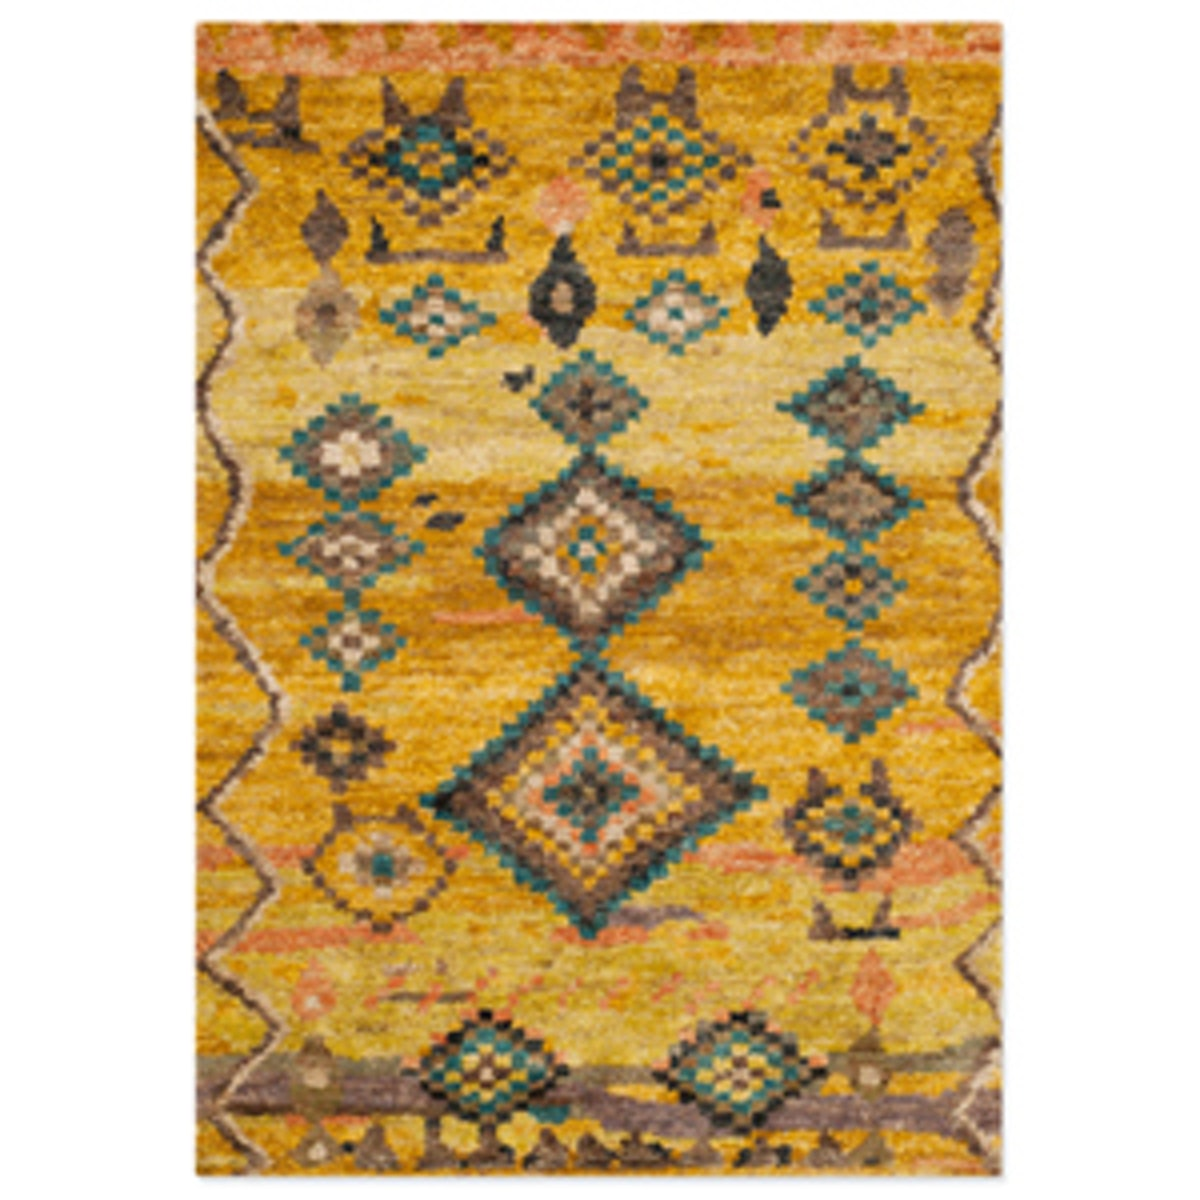 Casablanca Knotted Rug